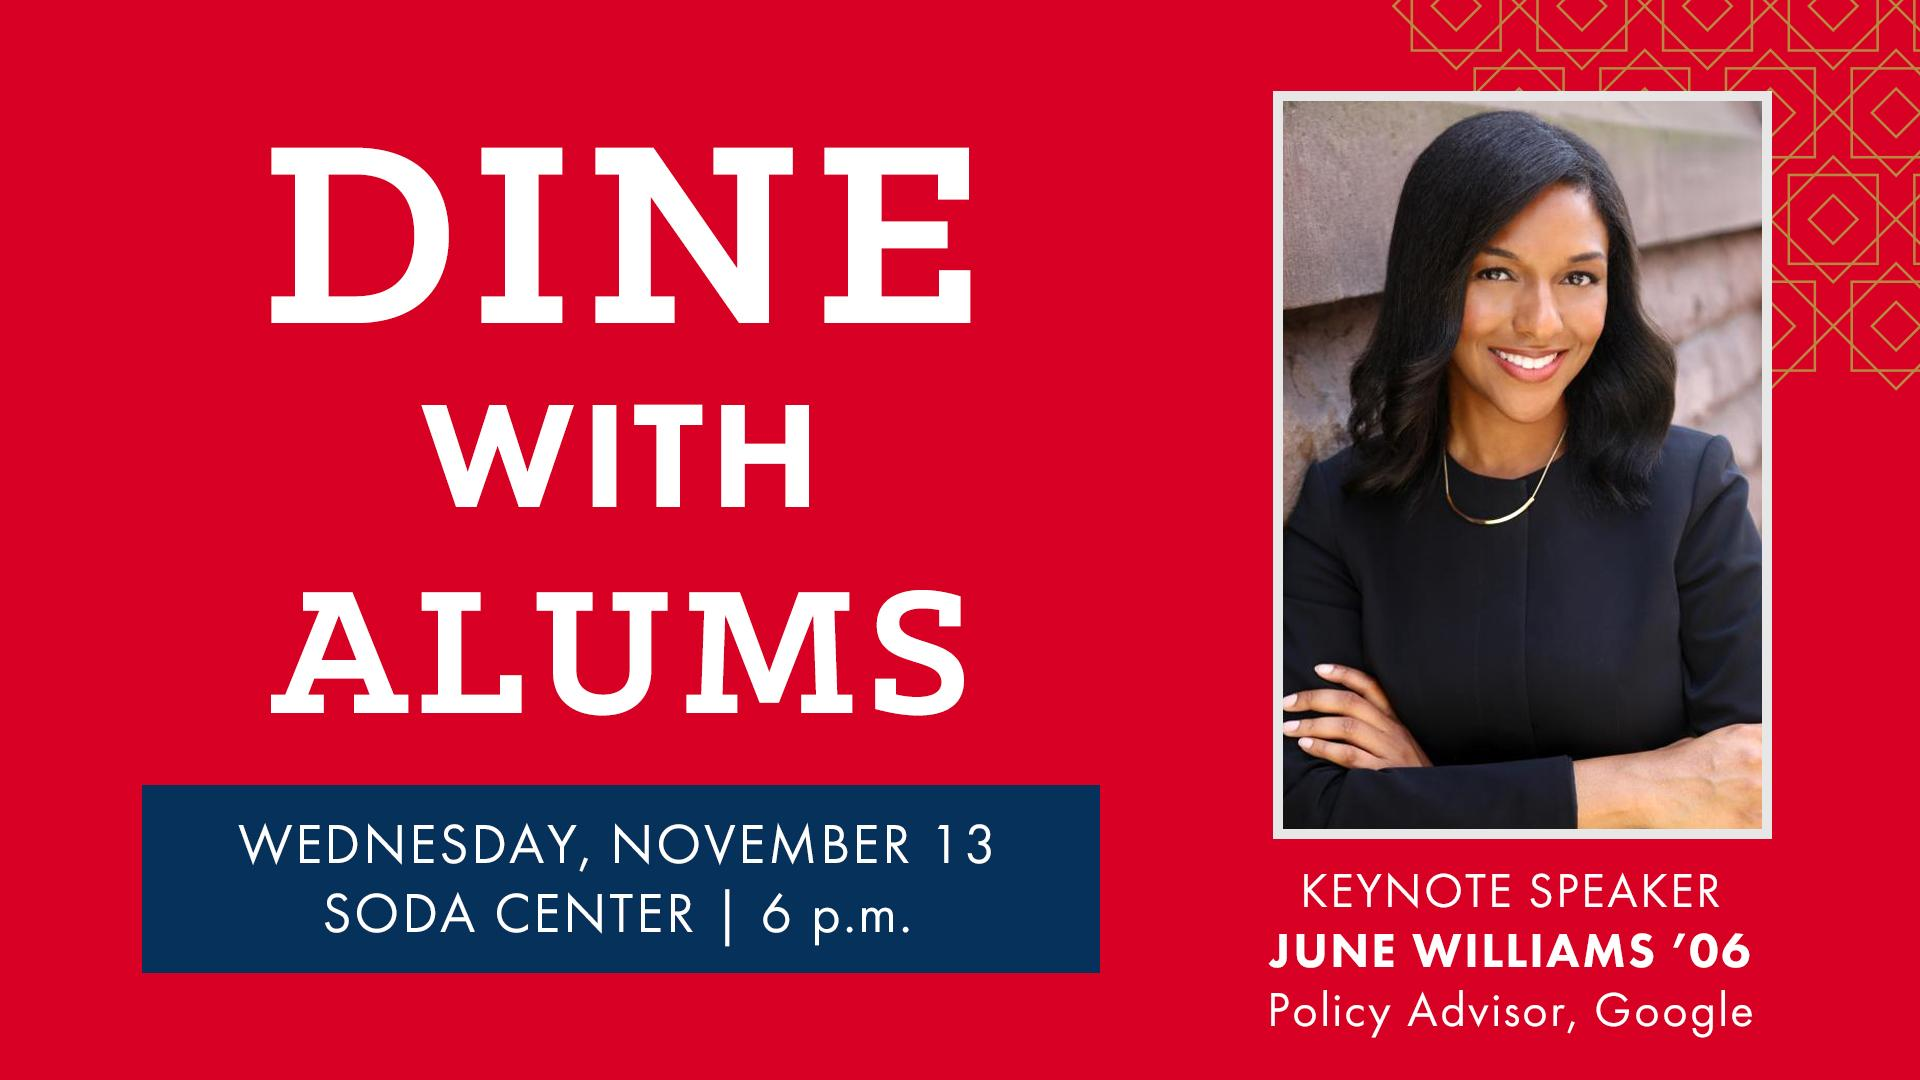 Dine with Alums